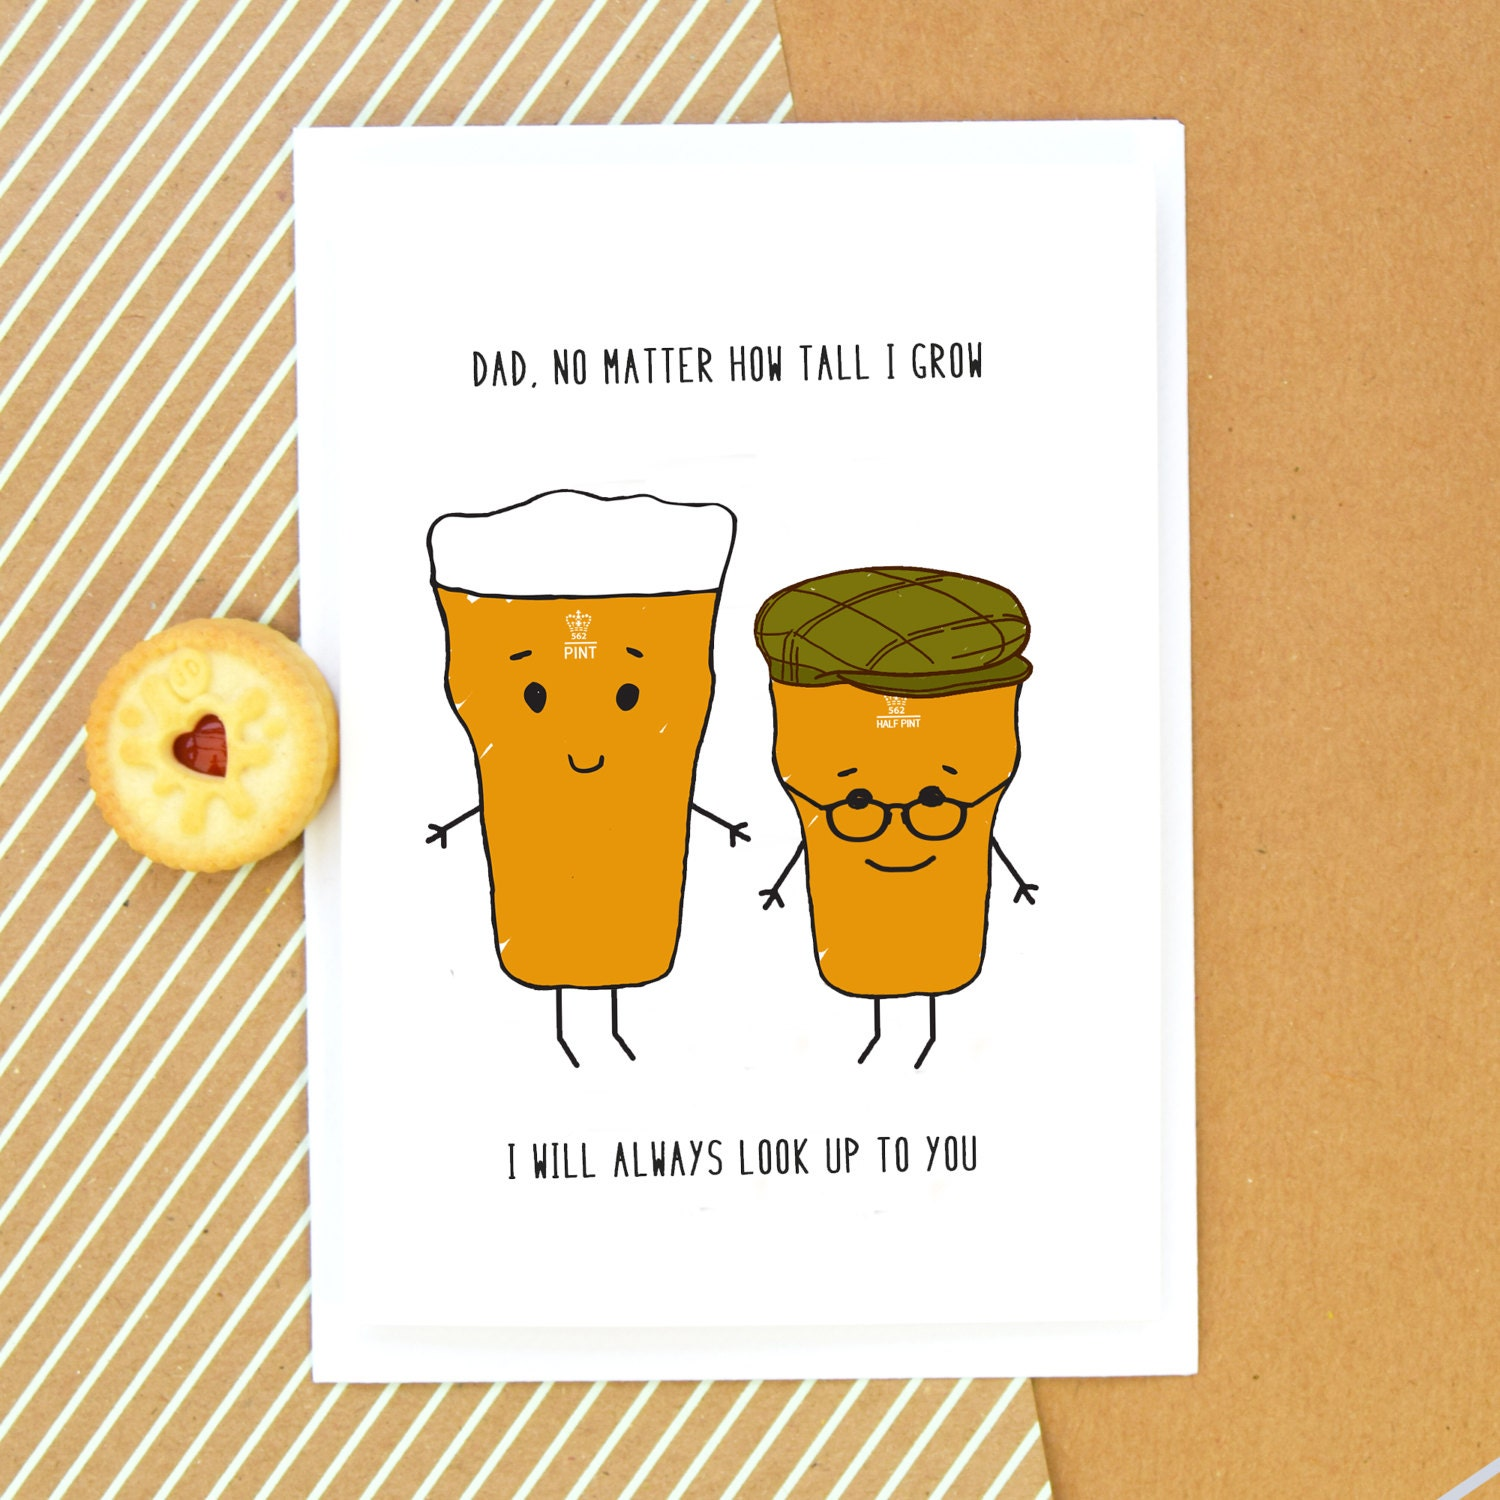 Funny Card For Dad Dad Birthday Card Father's Day Card